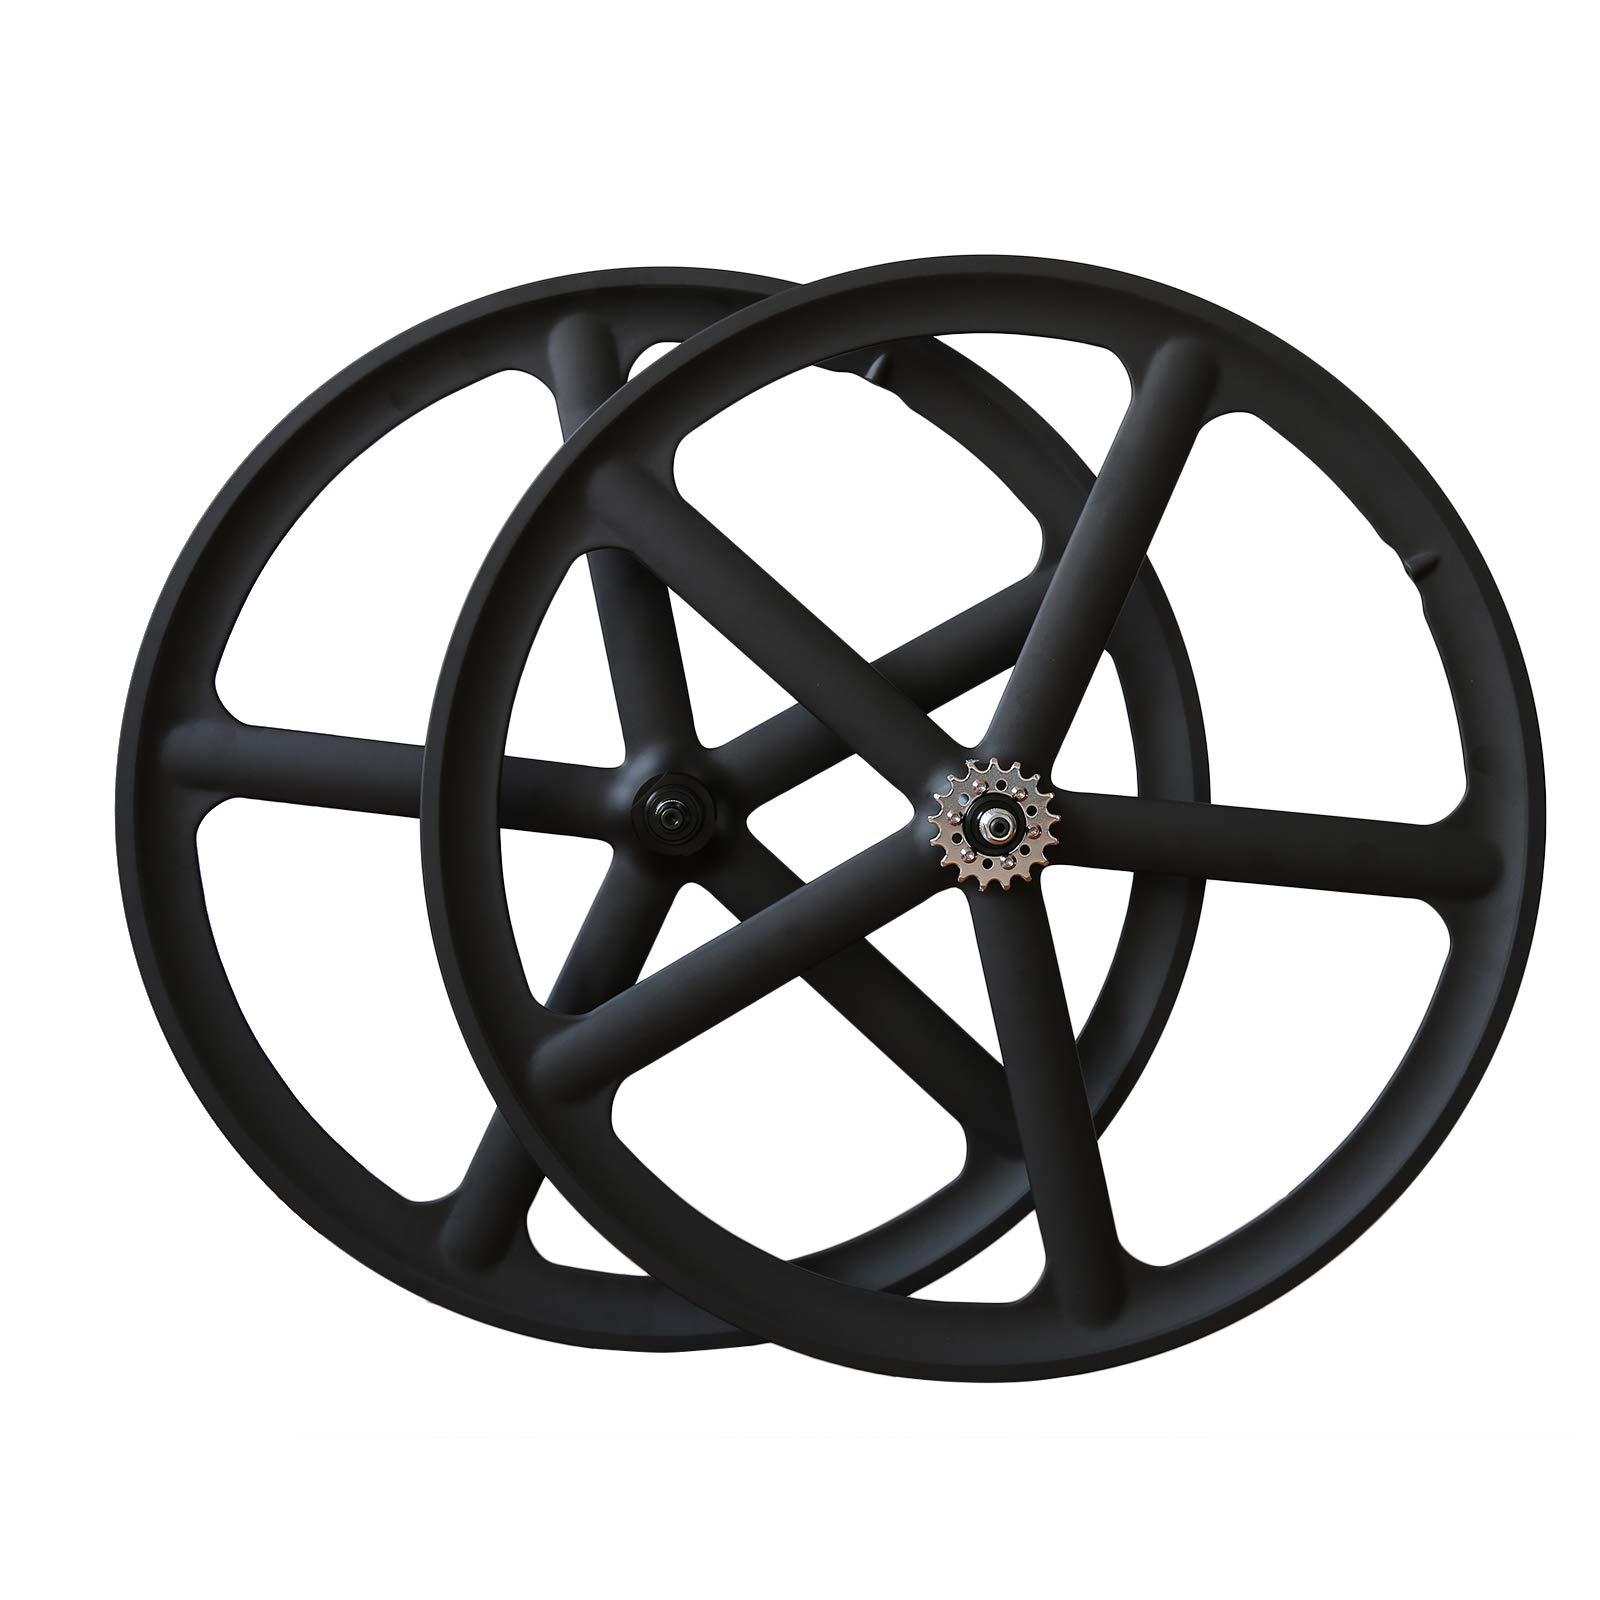 SOLOMONE CAVALLI 700c 5 Spoke All-in-one Bicycle Wheel Set Mag Wheelset for Fixie Fixed Gear Road Single Speed by SOLOMONE CAVALLI